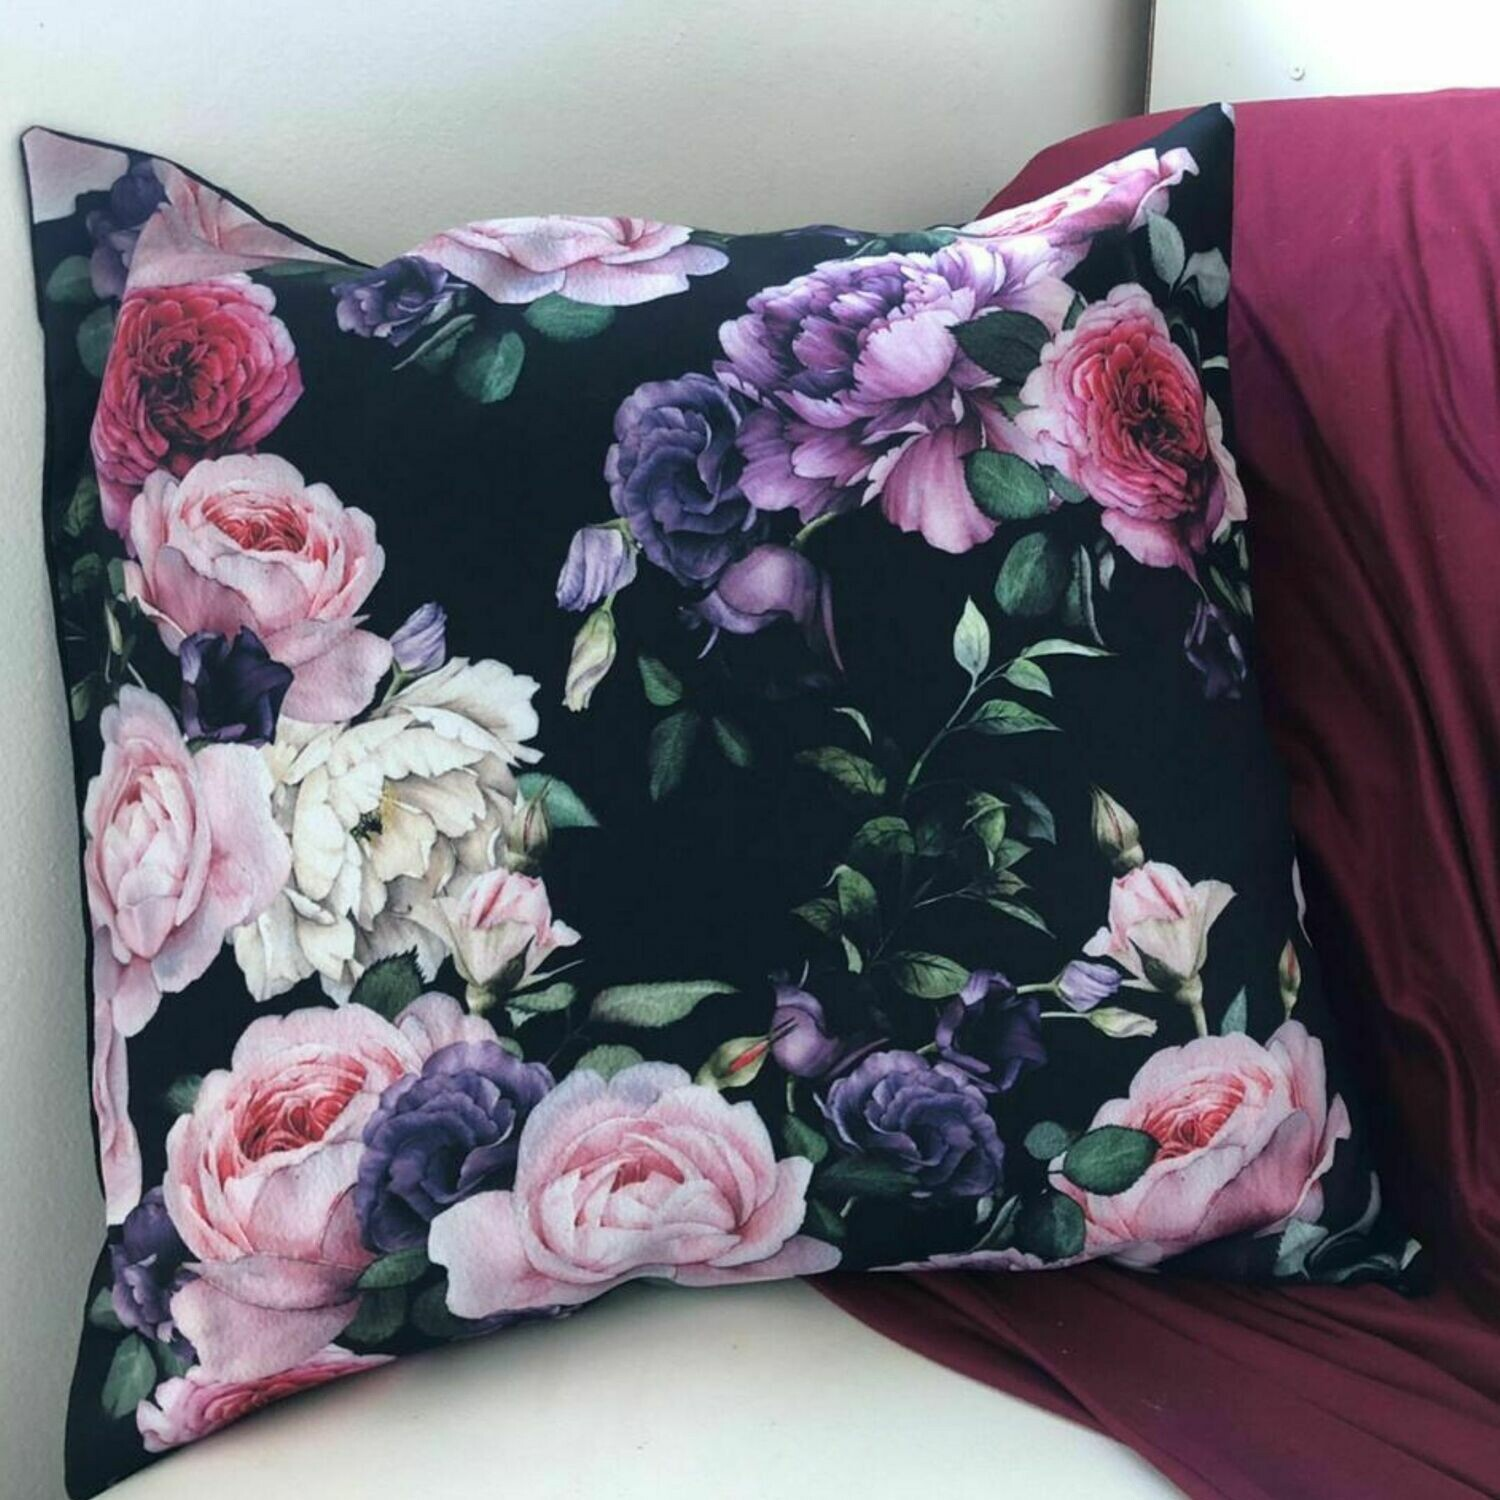 Scatter cushion - floral print 45 x 45 cm